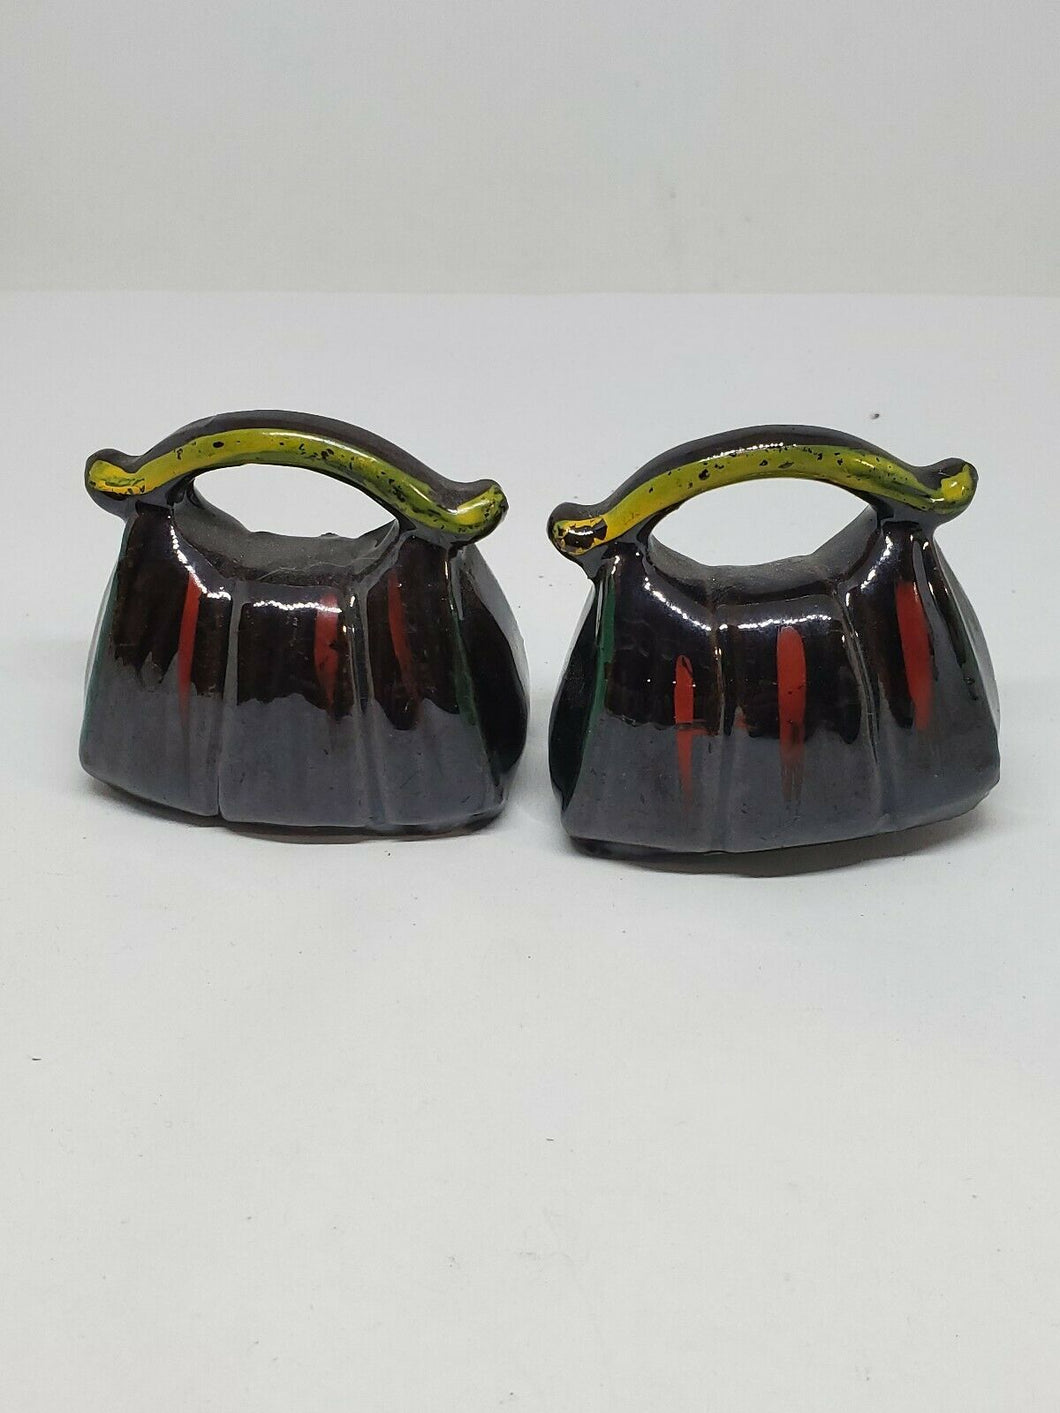 Vintage Japanese Bag Brown And Green Ceramic Salt And Pepper Shakers